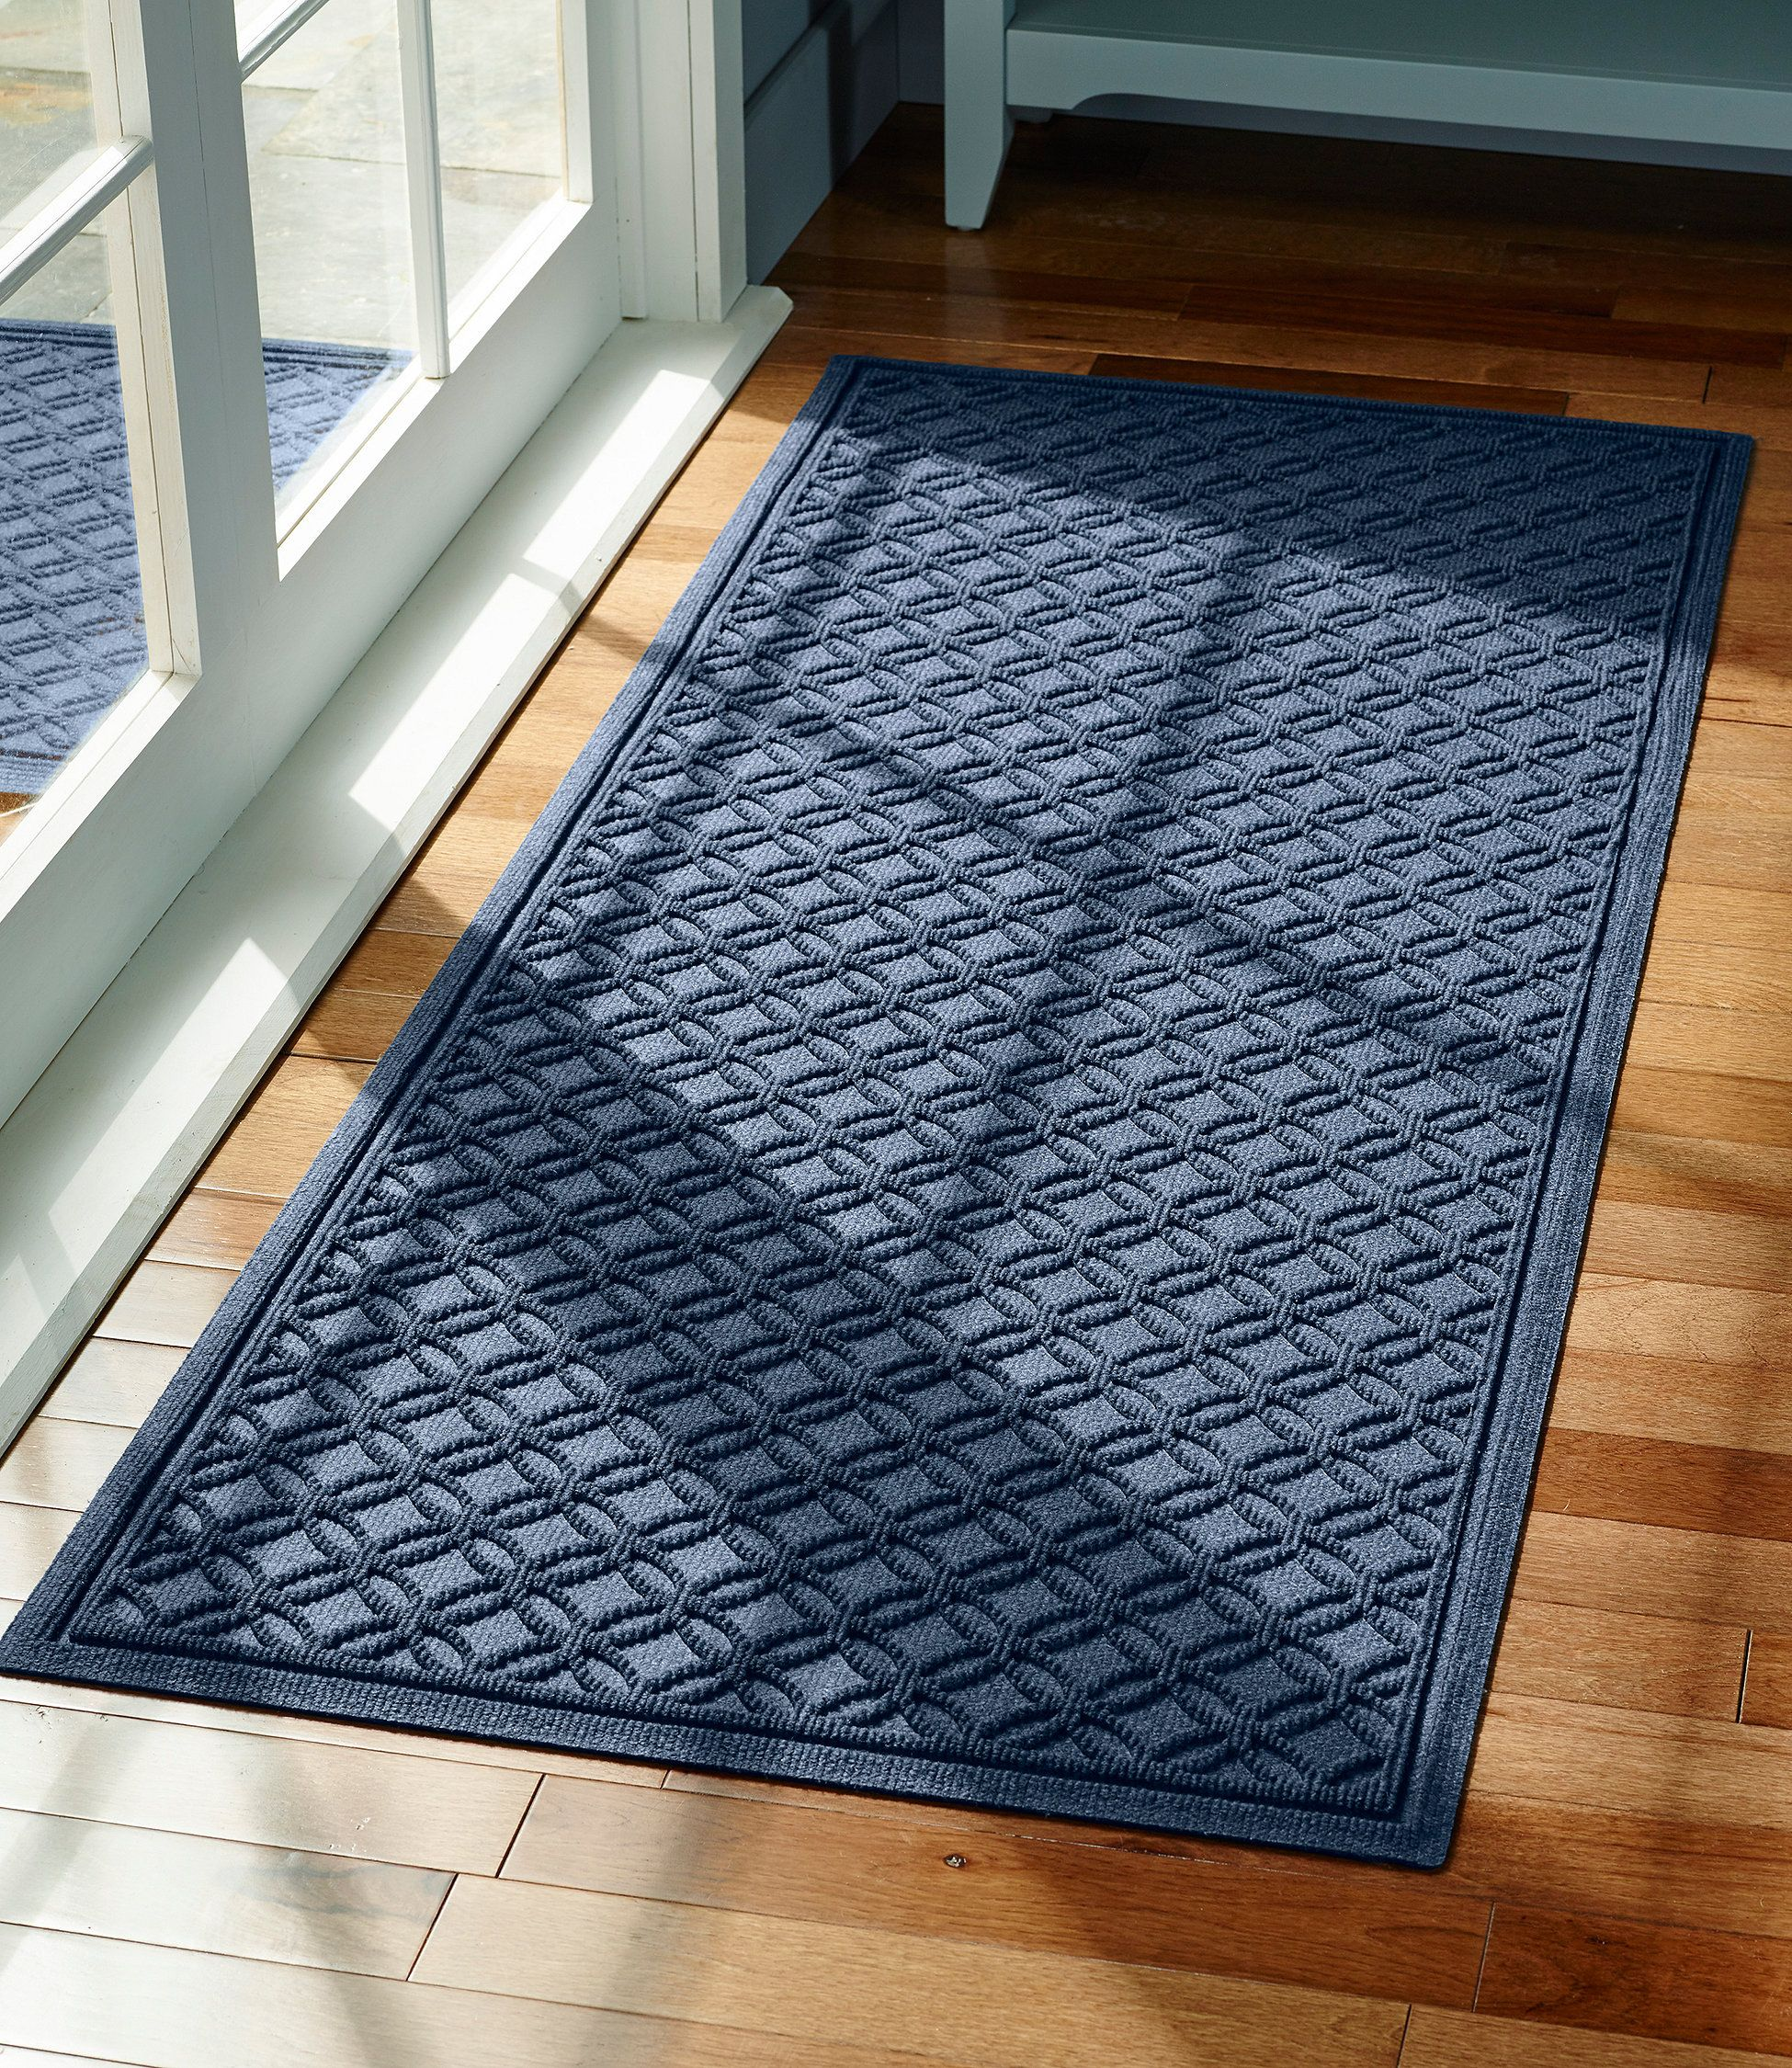 mats get rain ready glass hog for a non outside new door floor water with spring slip mat